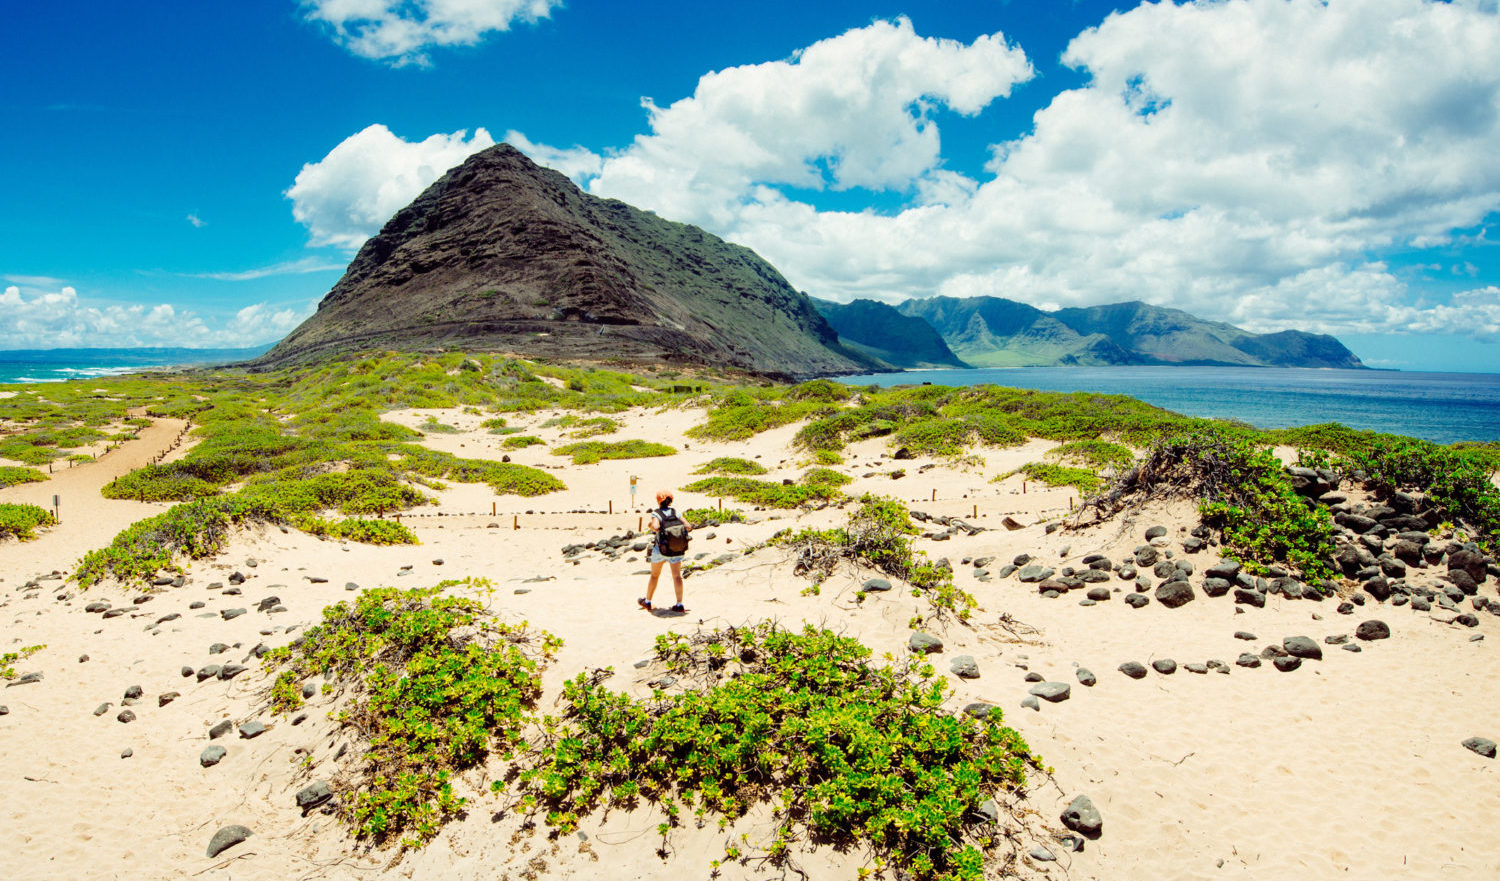 Woman hiking on the dunes of Ka'ena Point in Oahu. Hawaii.